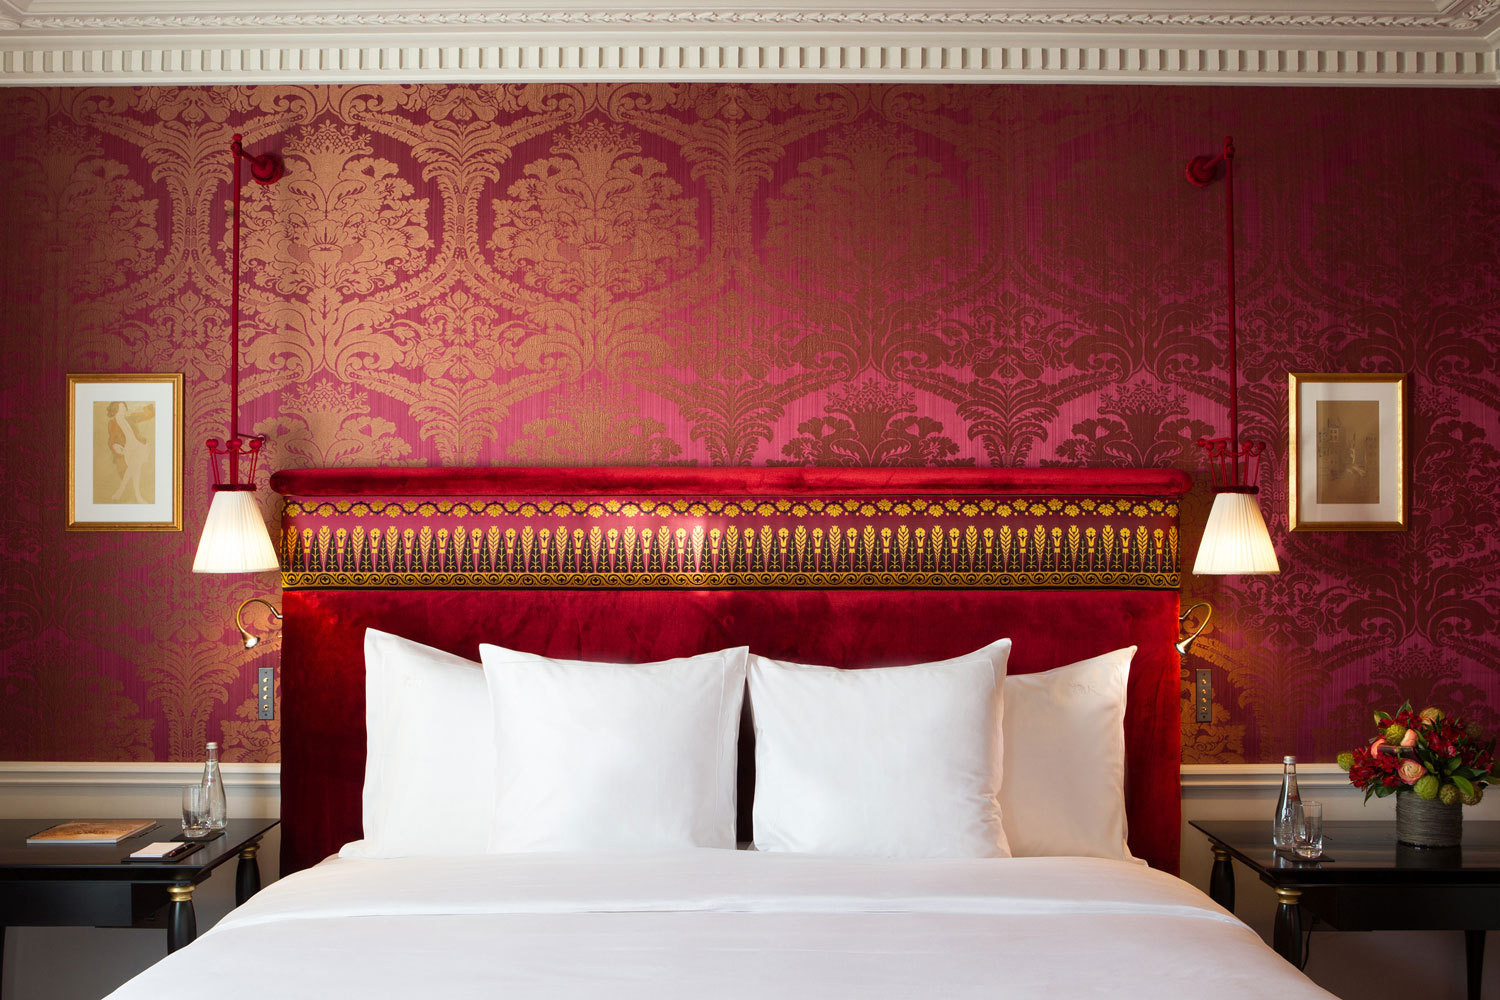 Damask-covered walls and velvet headboards are just a few of the Belle Époque–style details on display at the Jacques Garcia–designed La Réserve Paris.